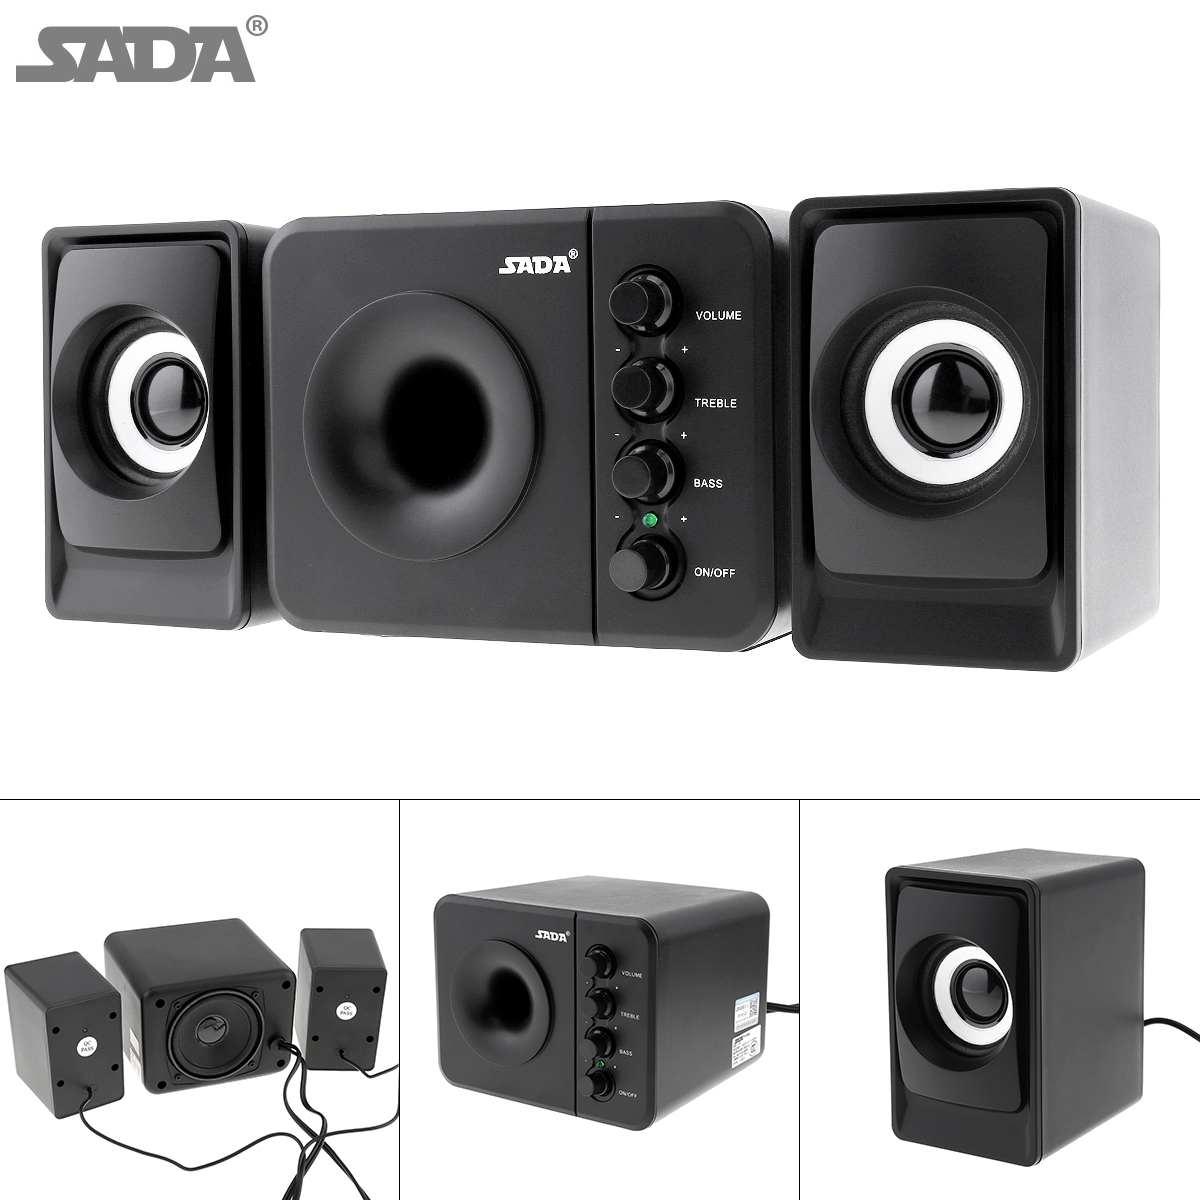 SADA Newest Full Range 3D Stereo Subwoofer 100% Bass PC Speaker Portable Music DJ USB Computer Speakers For Laptop TV